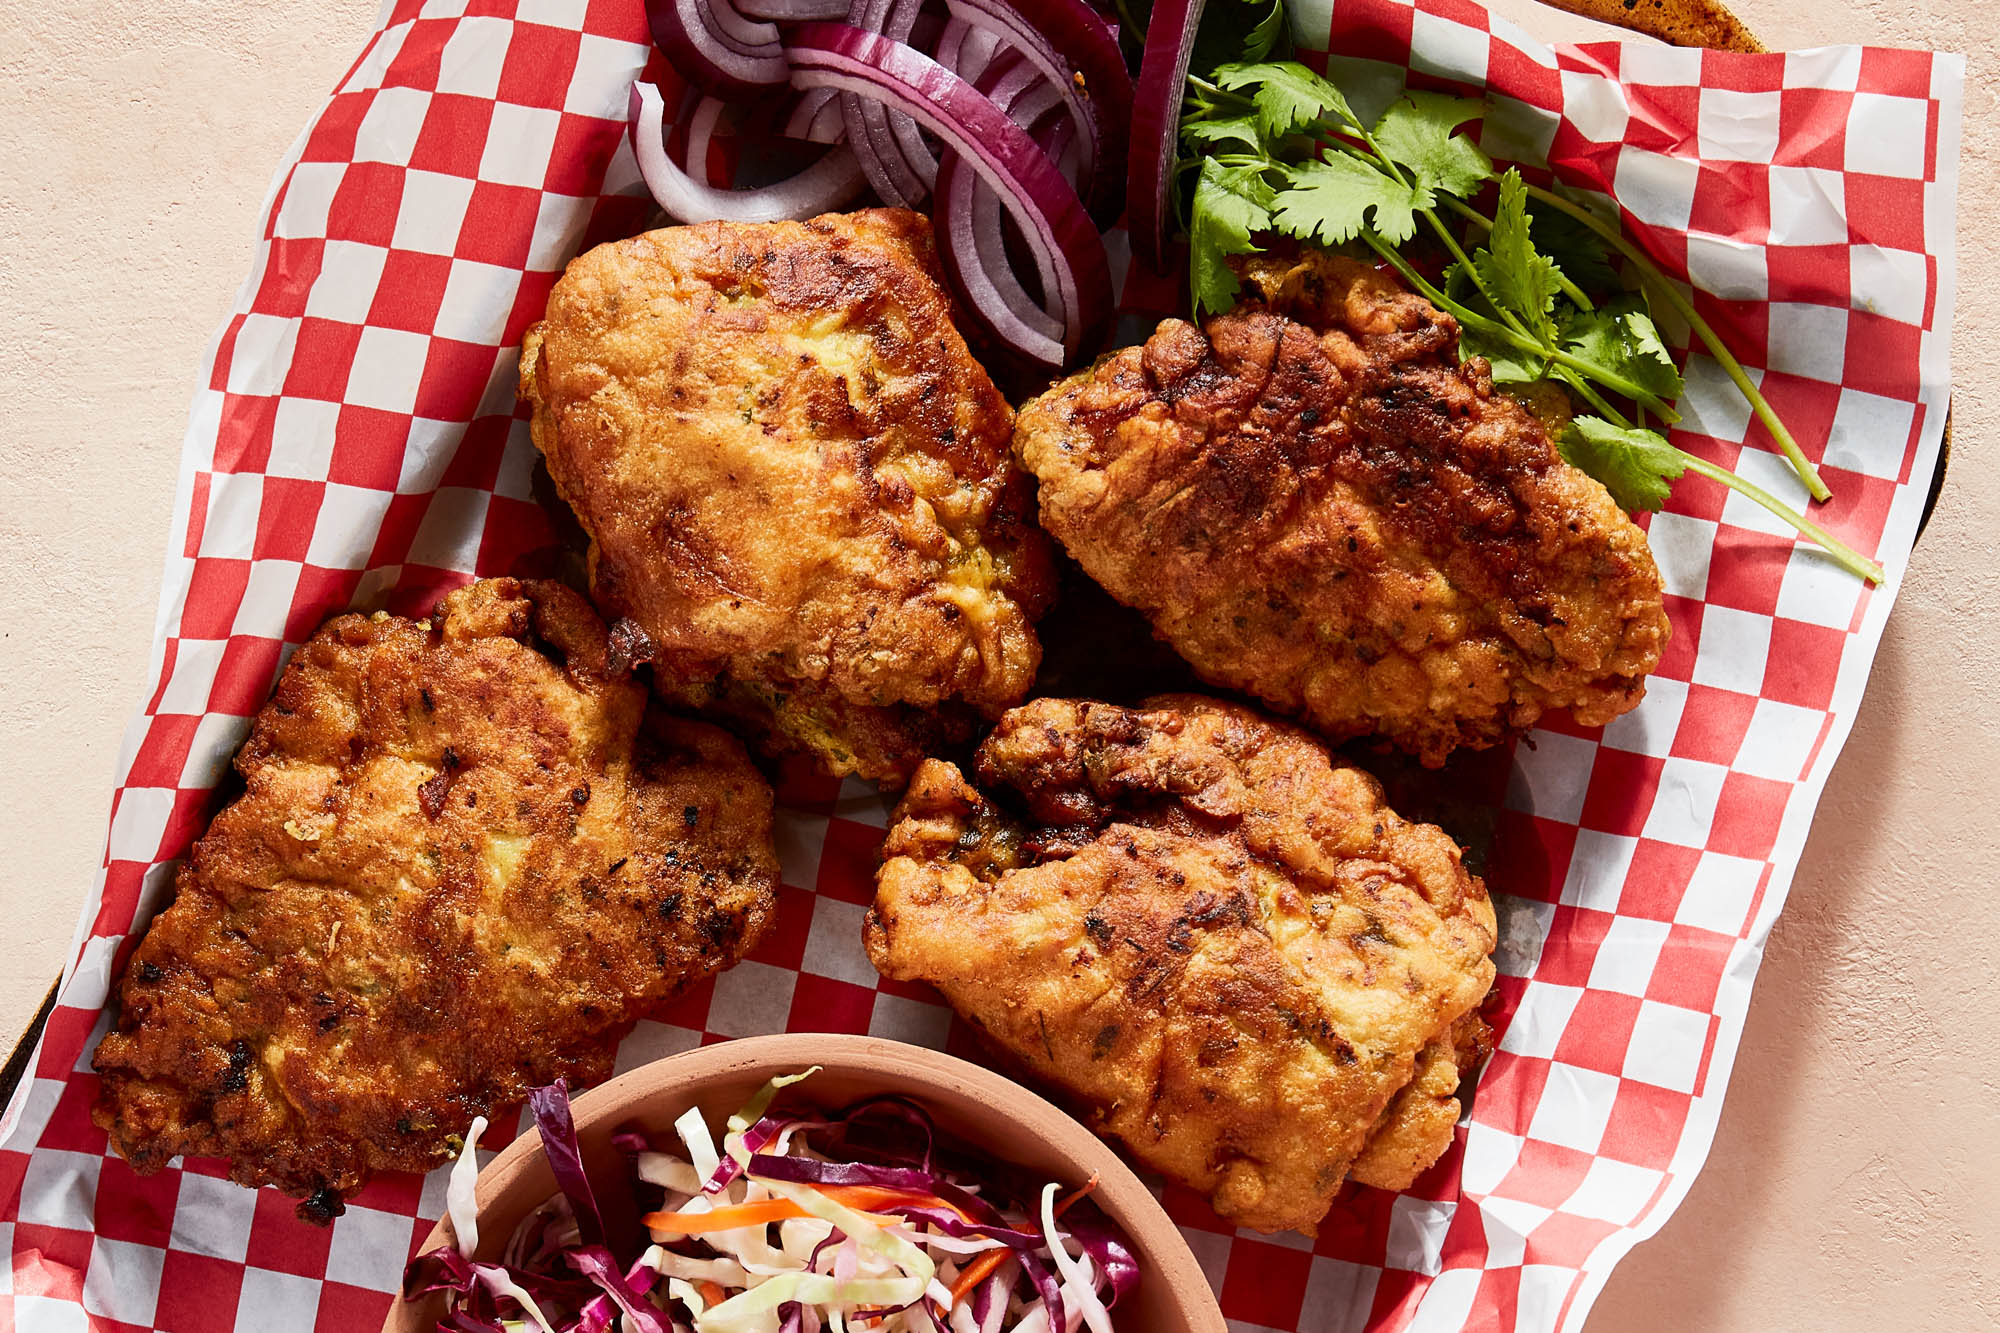 Marghi Na Farcha (Parsi Fried Chicken)